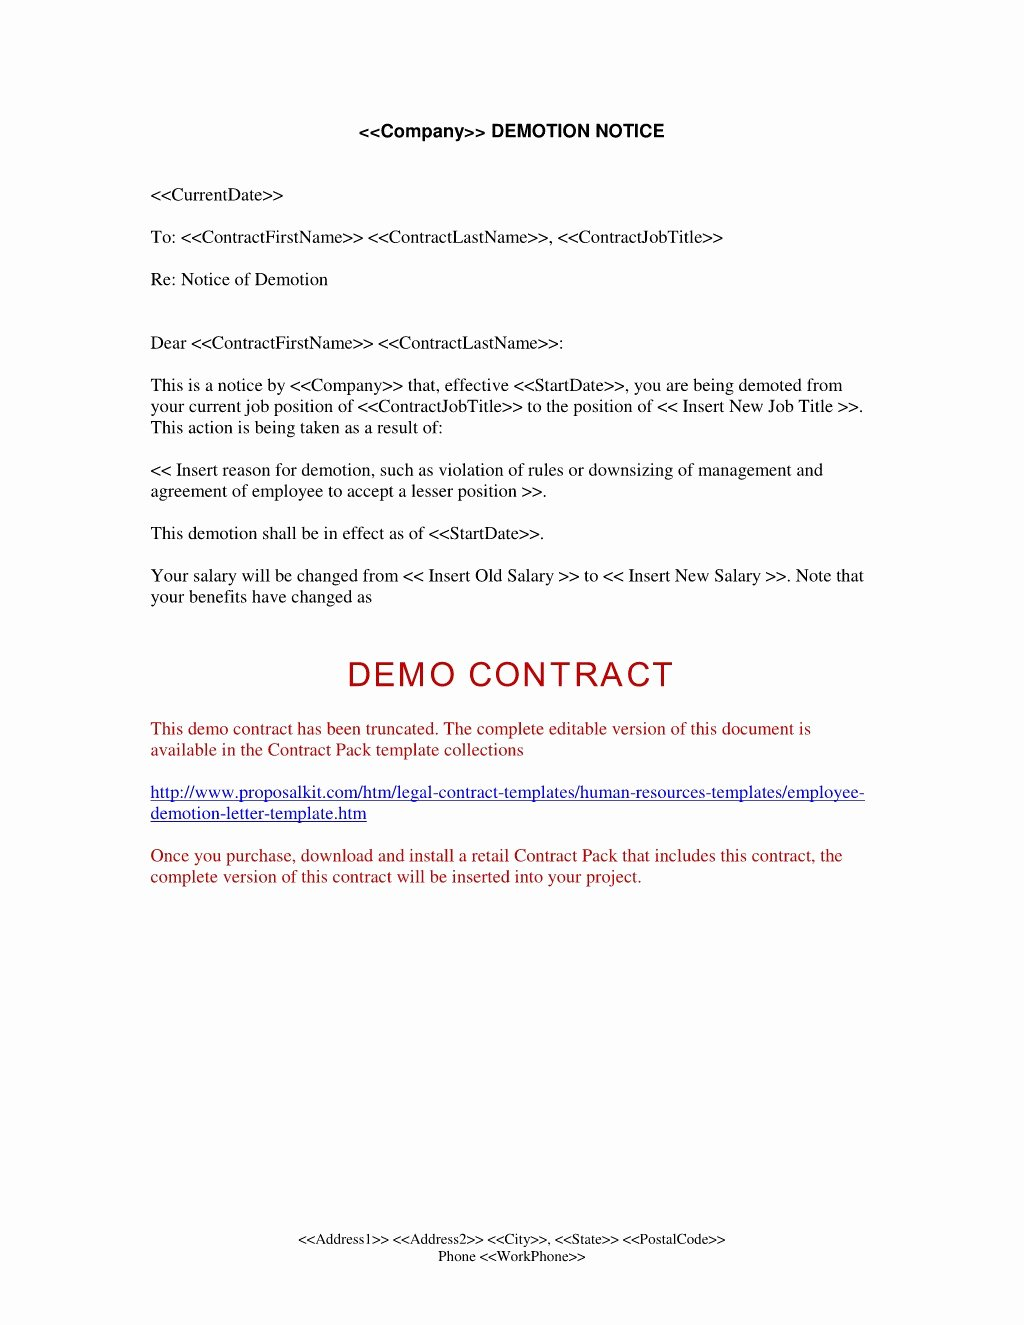 Voluntary Demotion Letter Template Best Of Demotion Letter Template Voluntary Sample Fresh